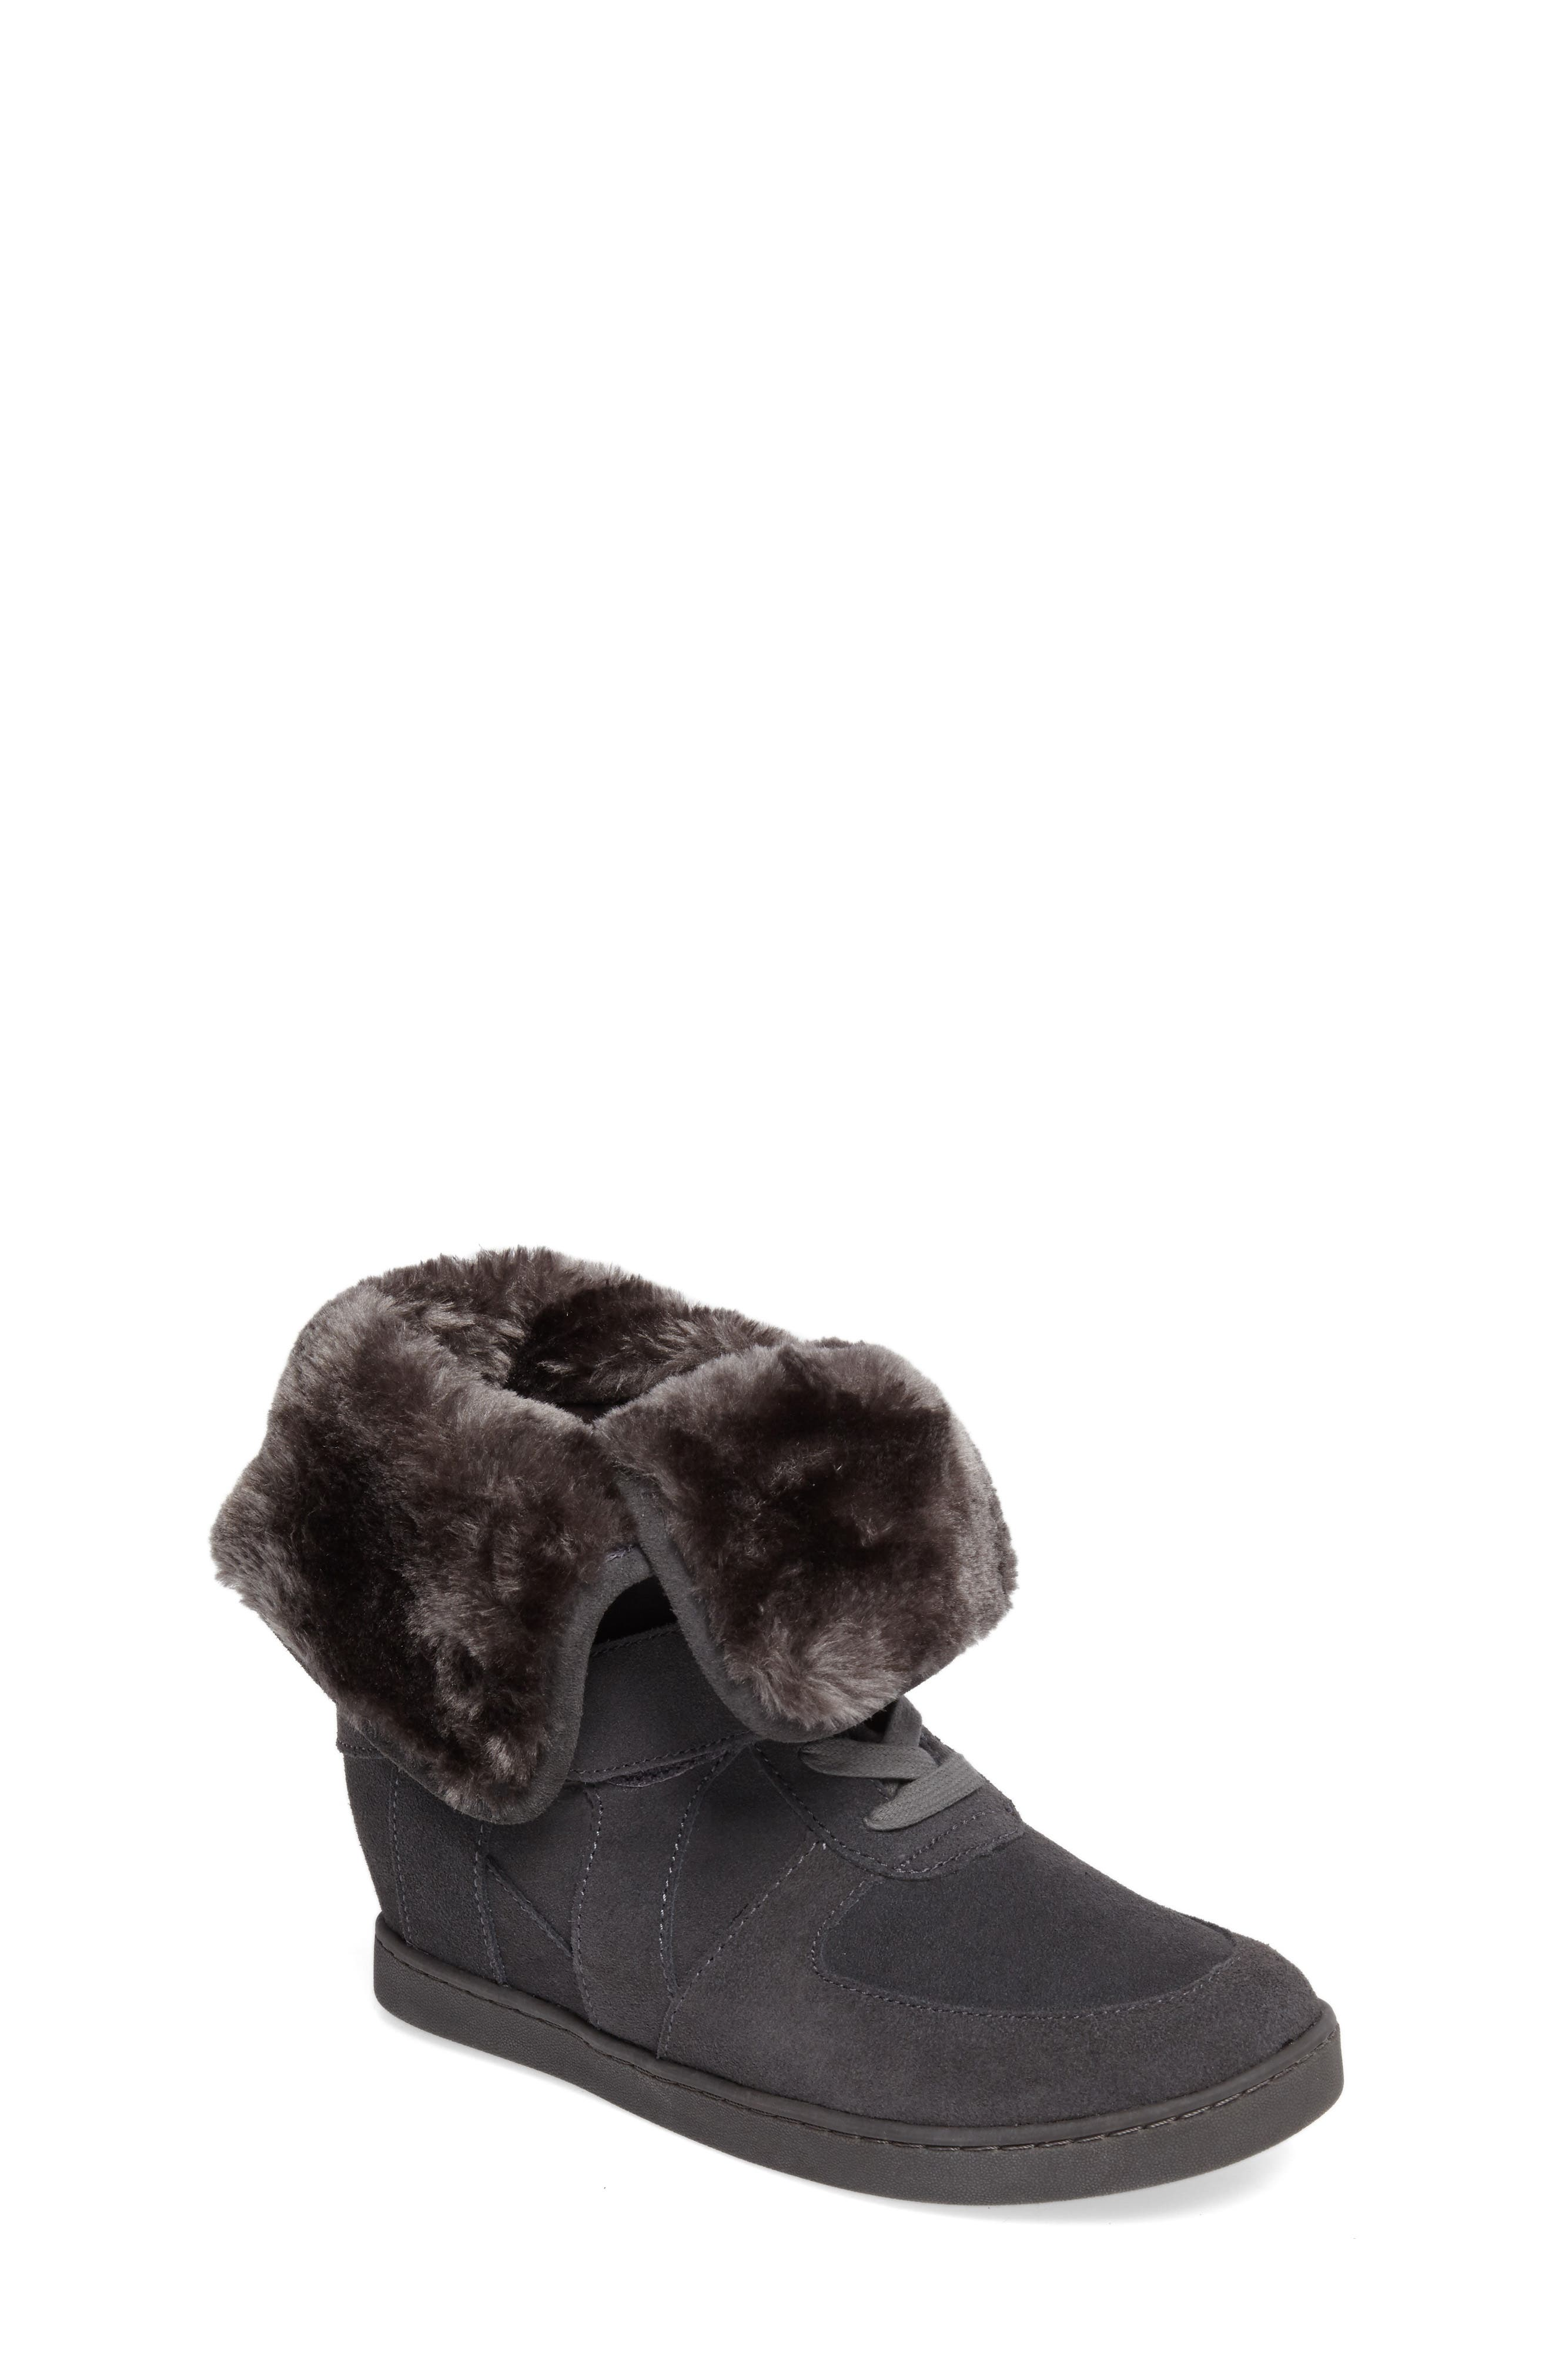 Boogie Beaver Faux Fur Cuffed Bootie,                             Main thumbnail 1, color,                             052